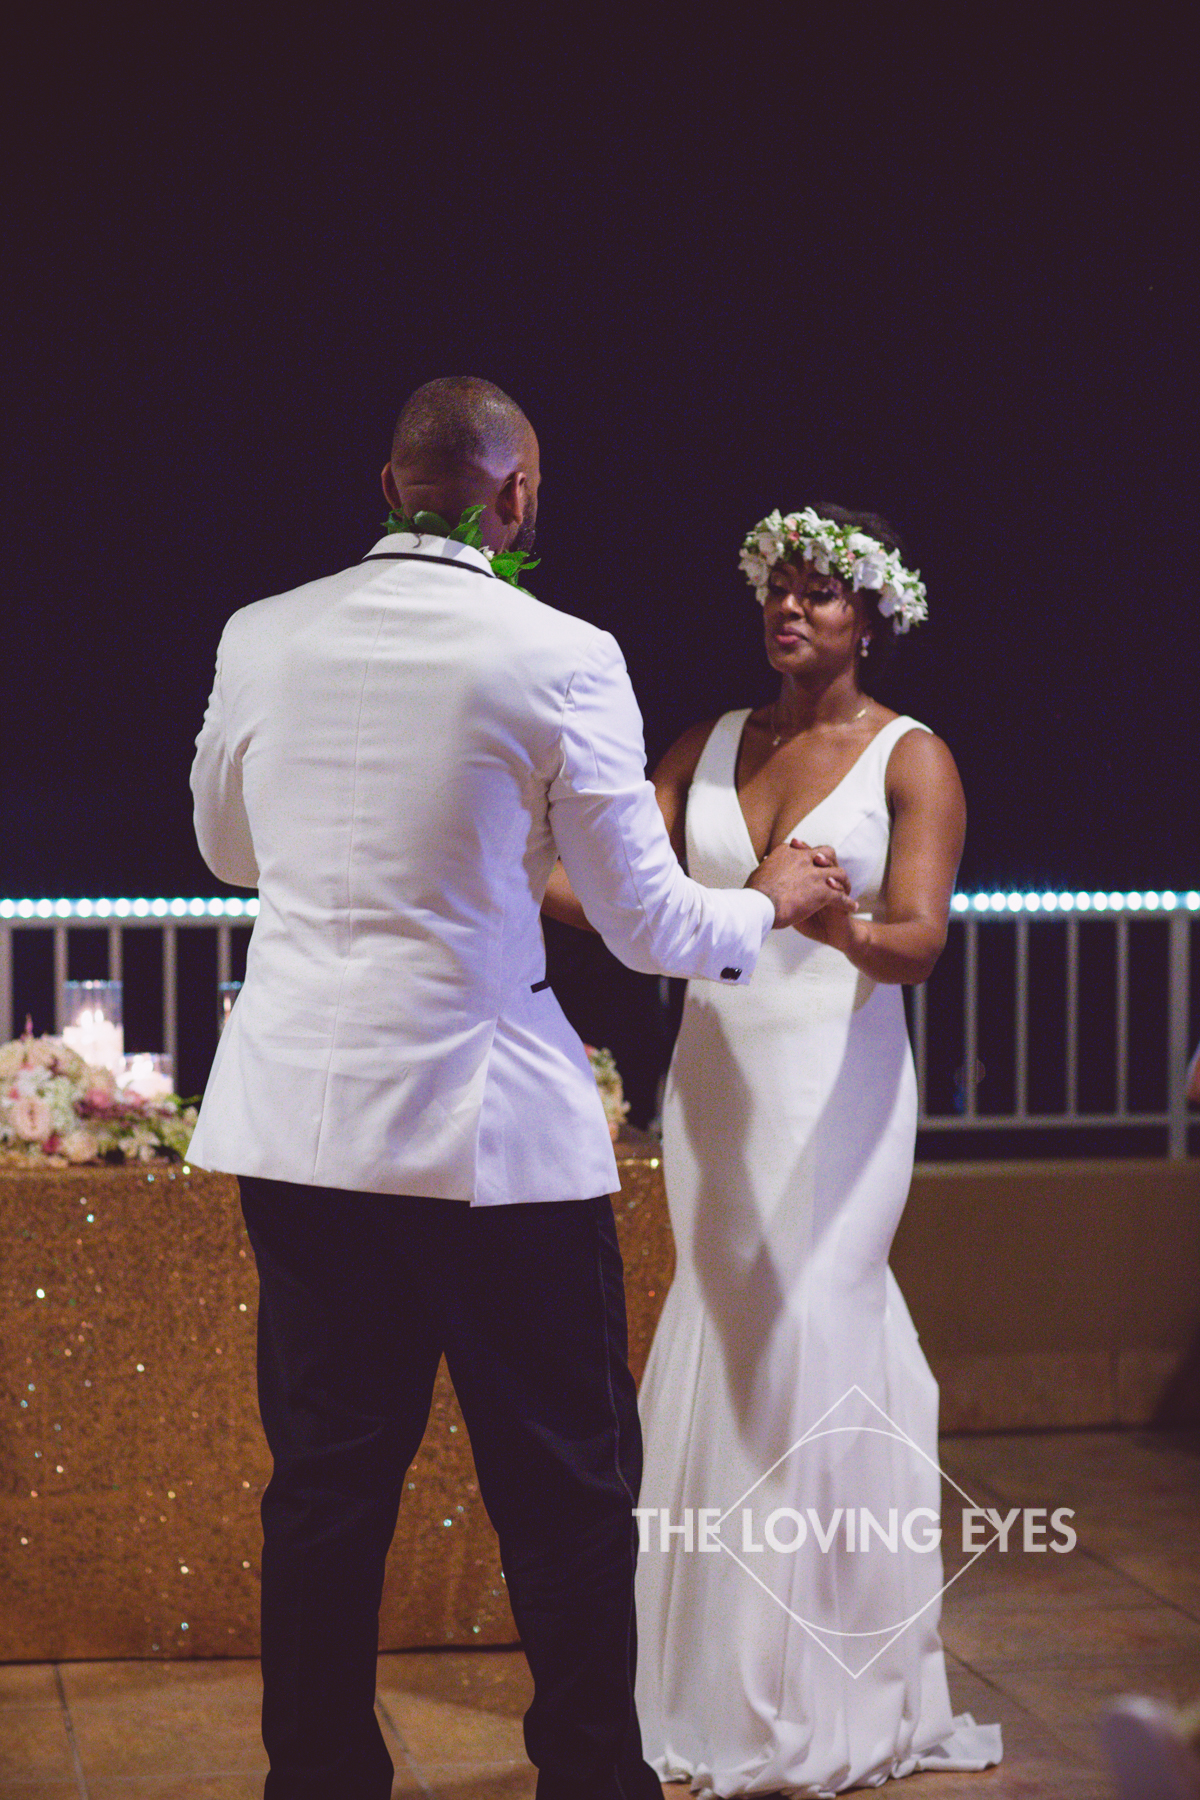 Bride and groom first dance during their wedding reception at Tikis in Waikiki